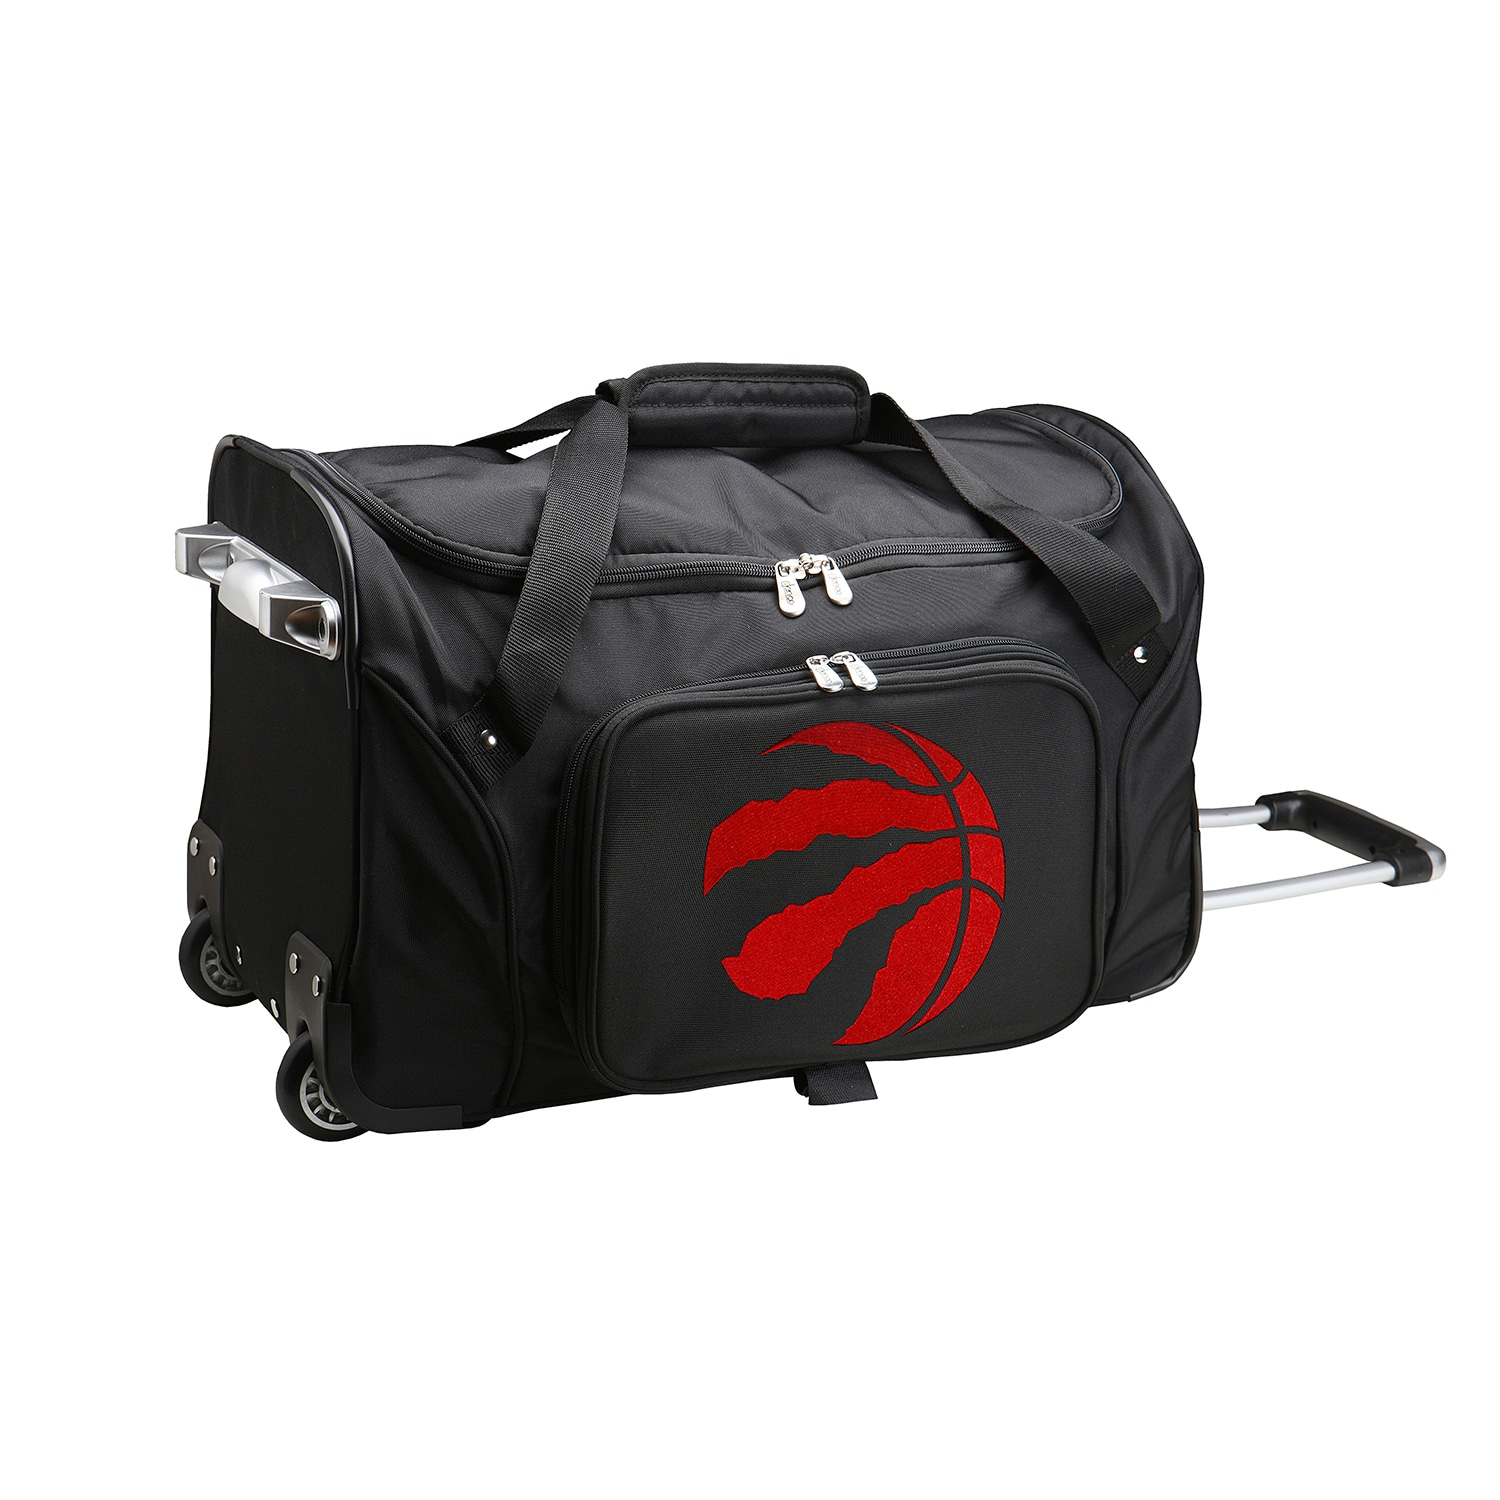 "Toronto Raptors 22"" 2-Wheeled Duffel Bag - Black"